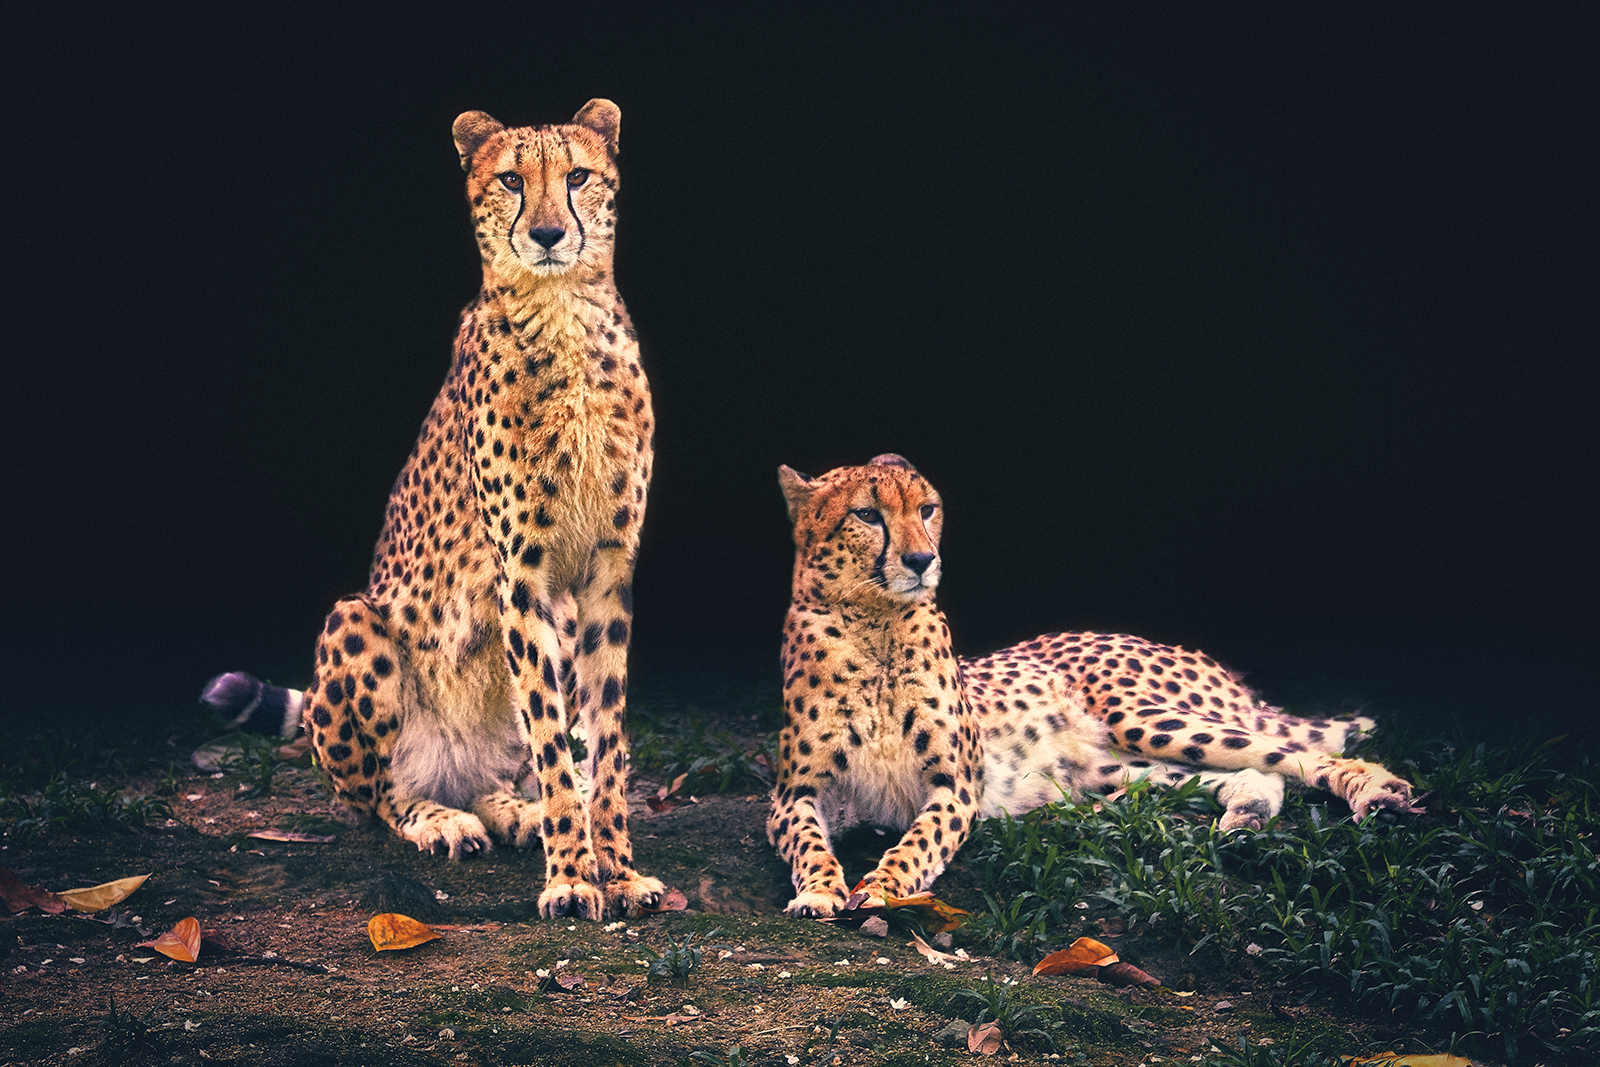 Portrait of a pair of Cheetahs